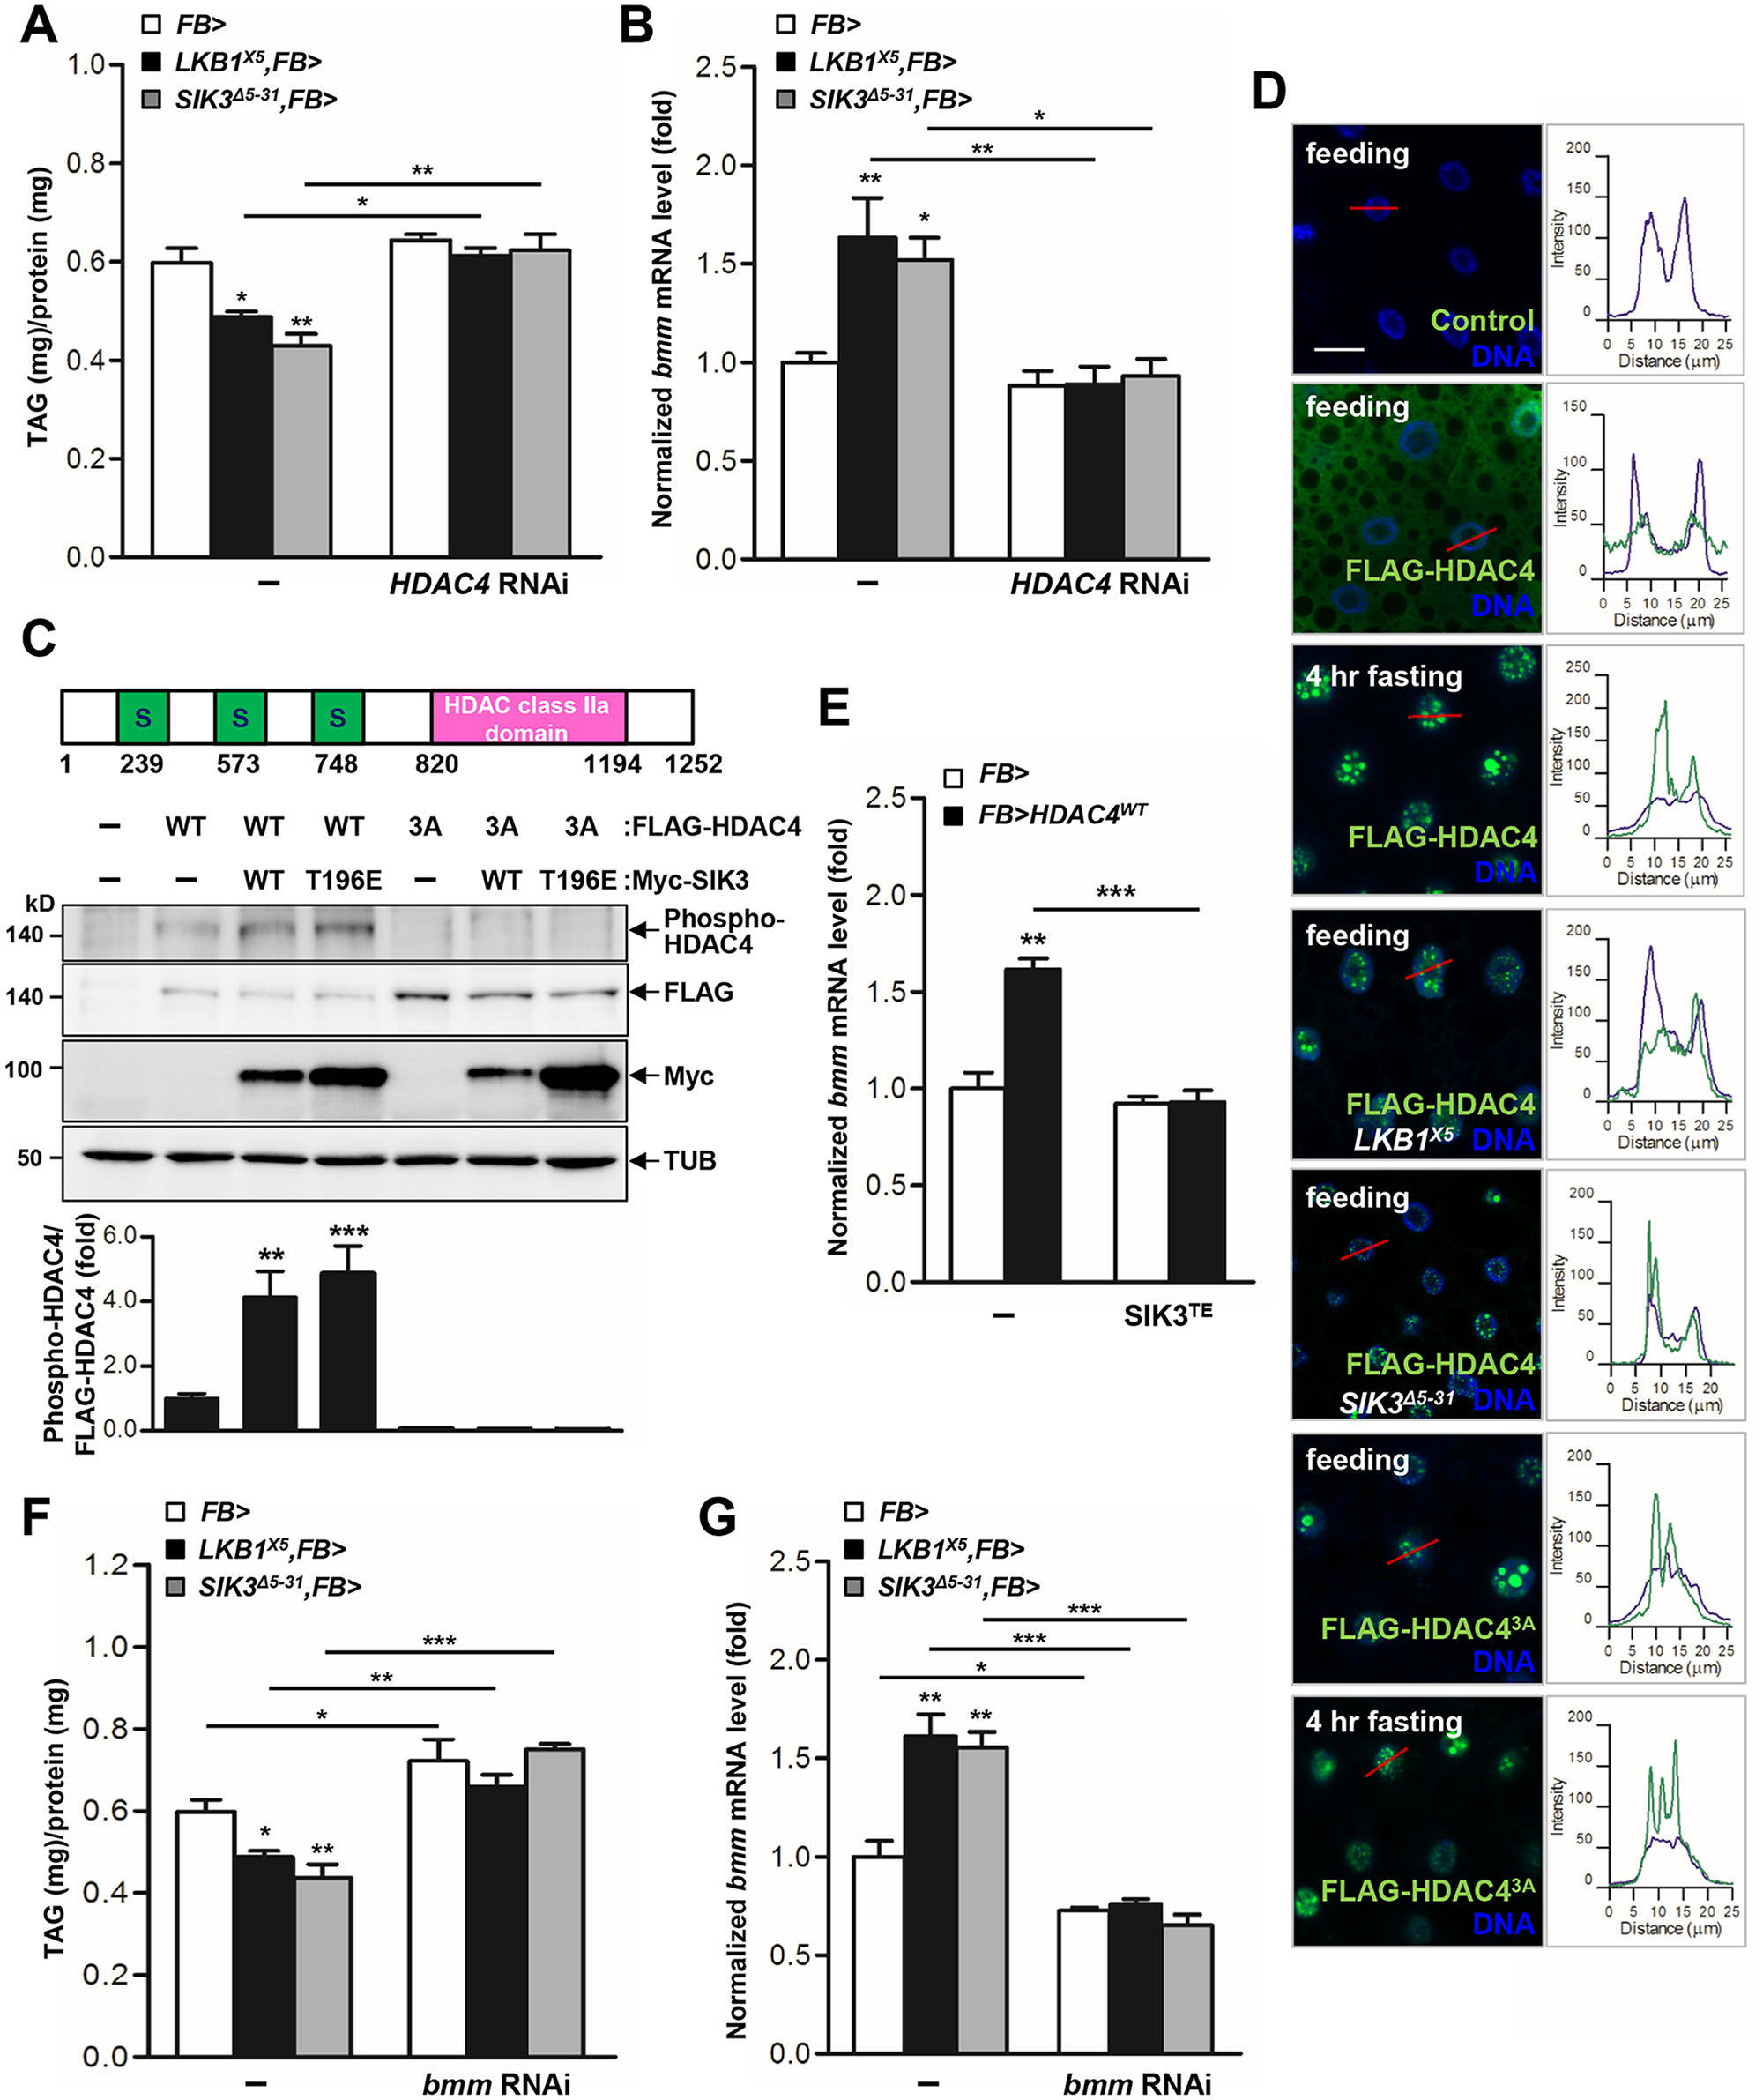 HDAC4 is the responsible target of LKB1-SIK3 signaling for controlling lipid homeostasis.